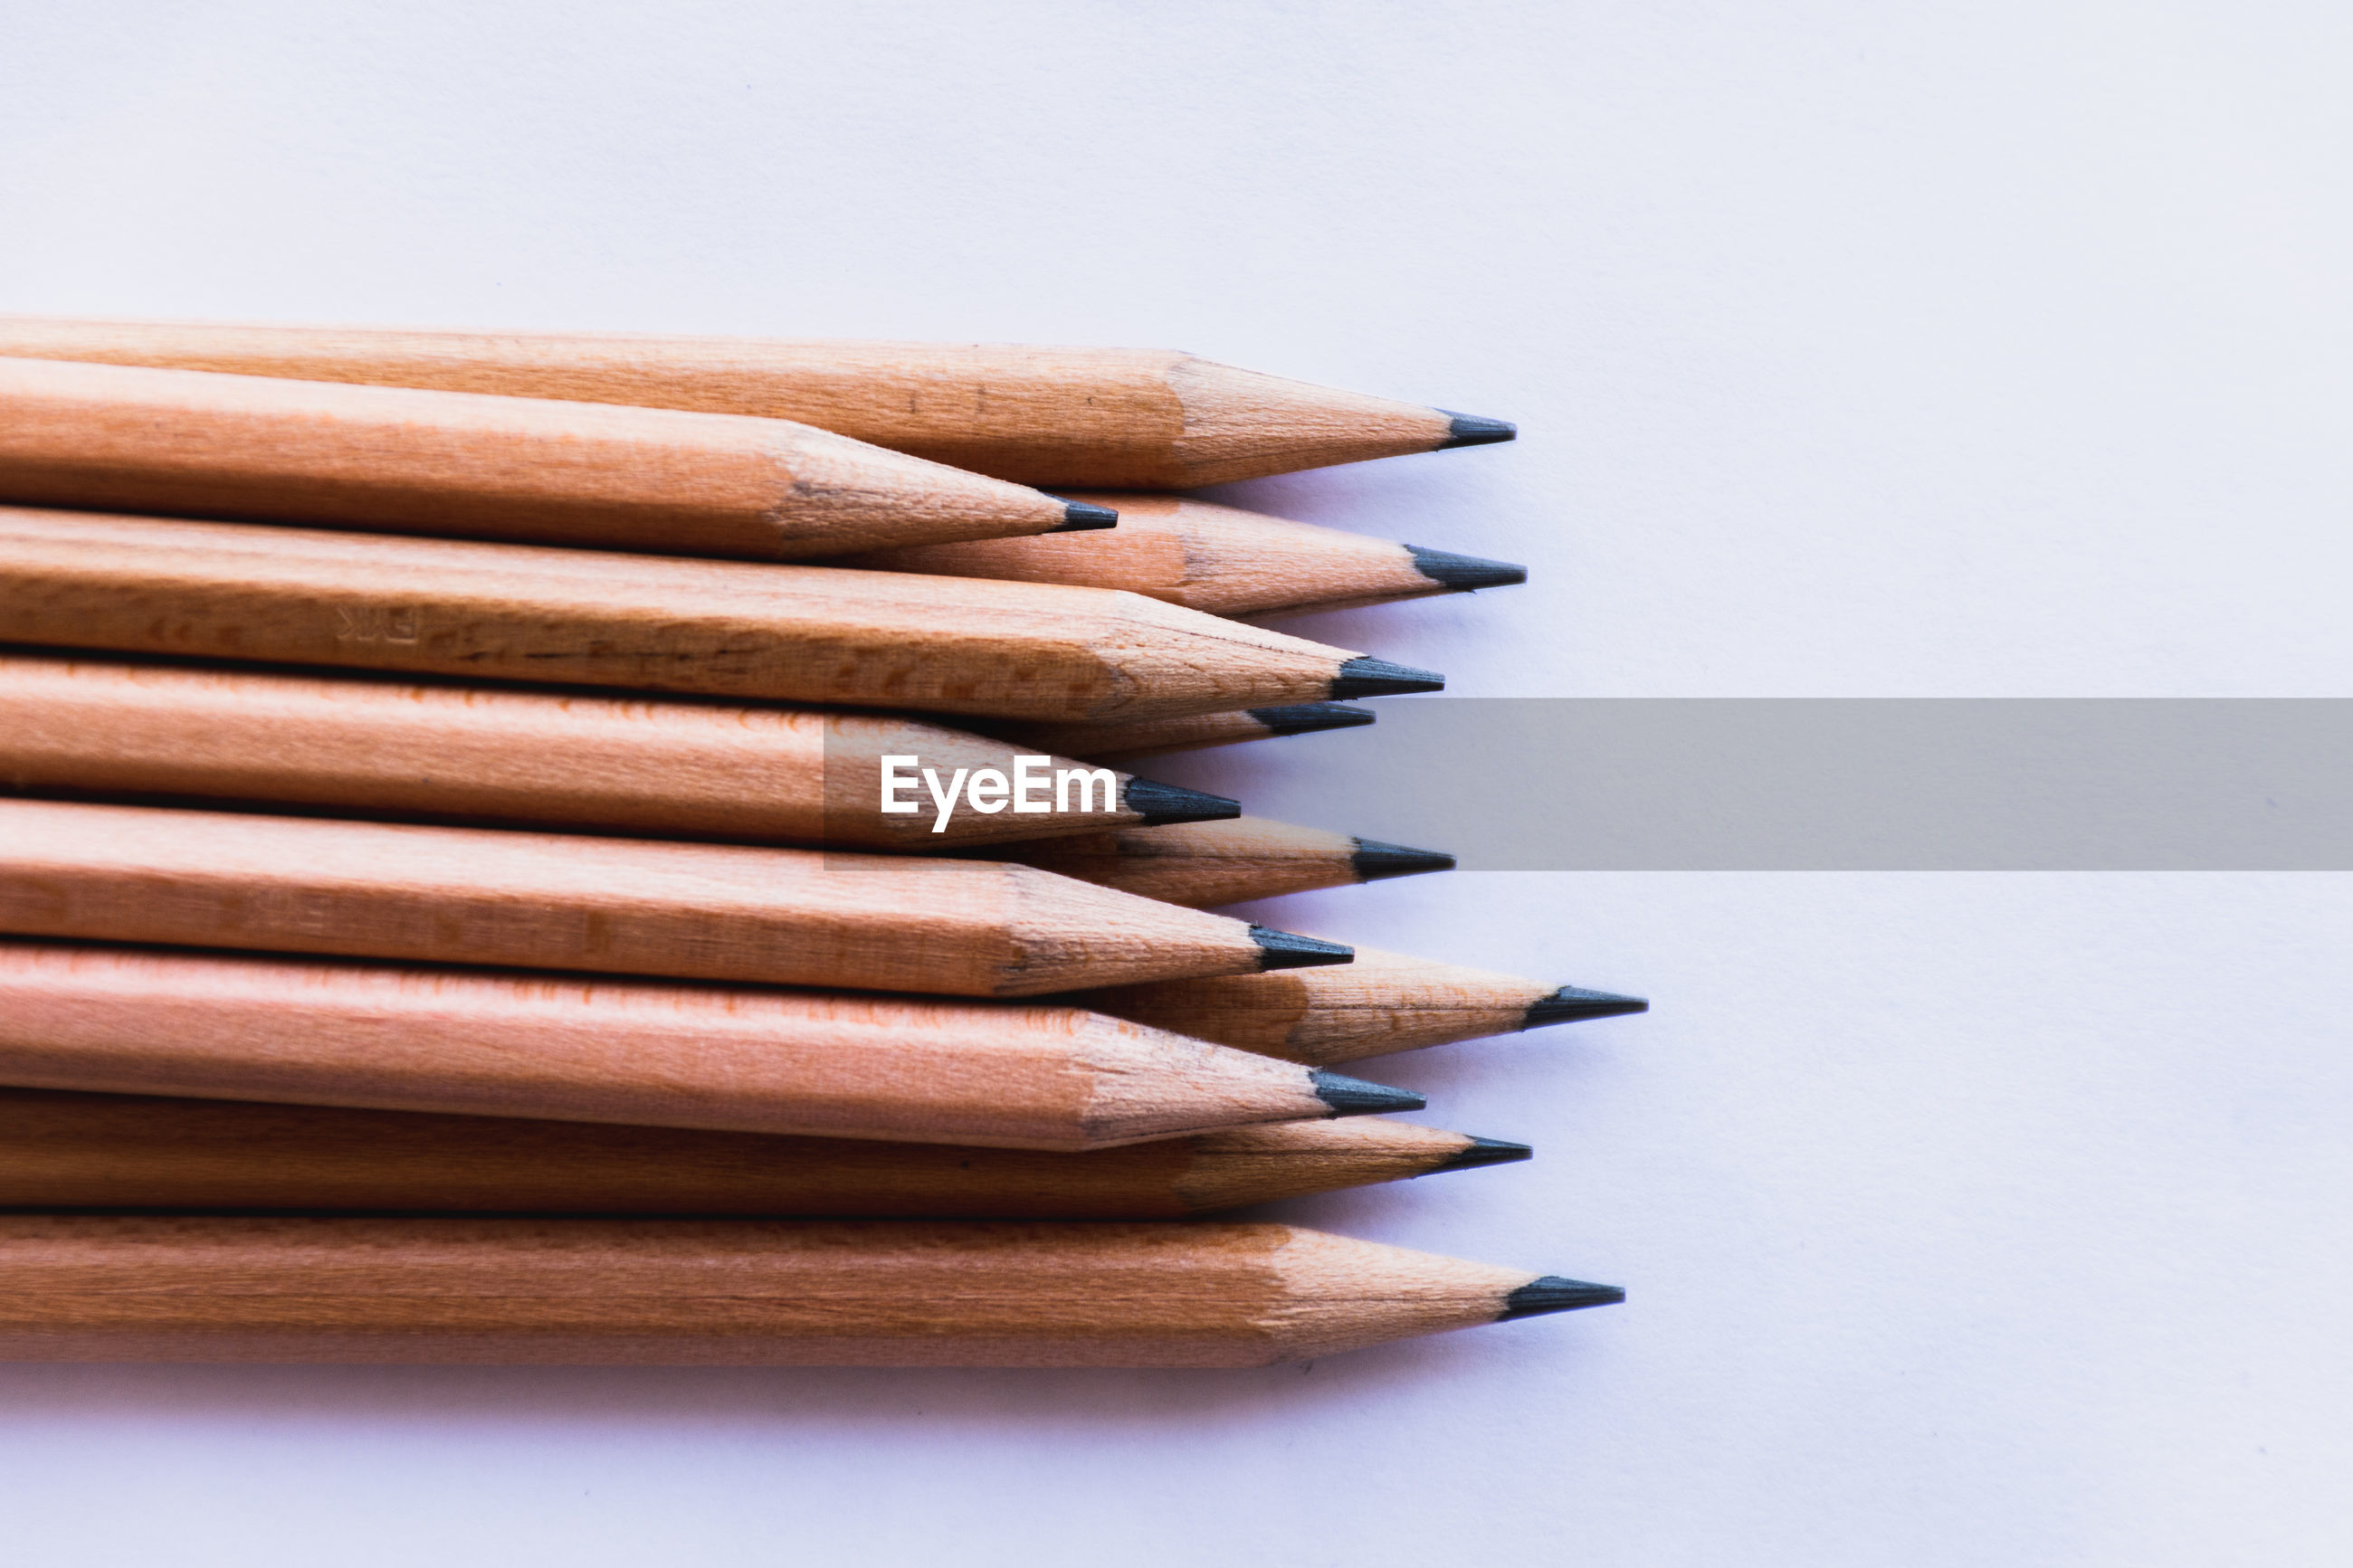 Pencils against white background